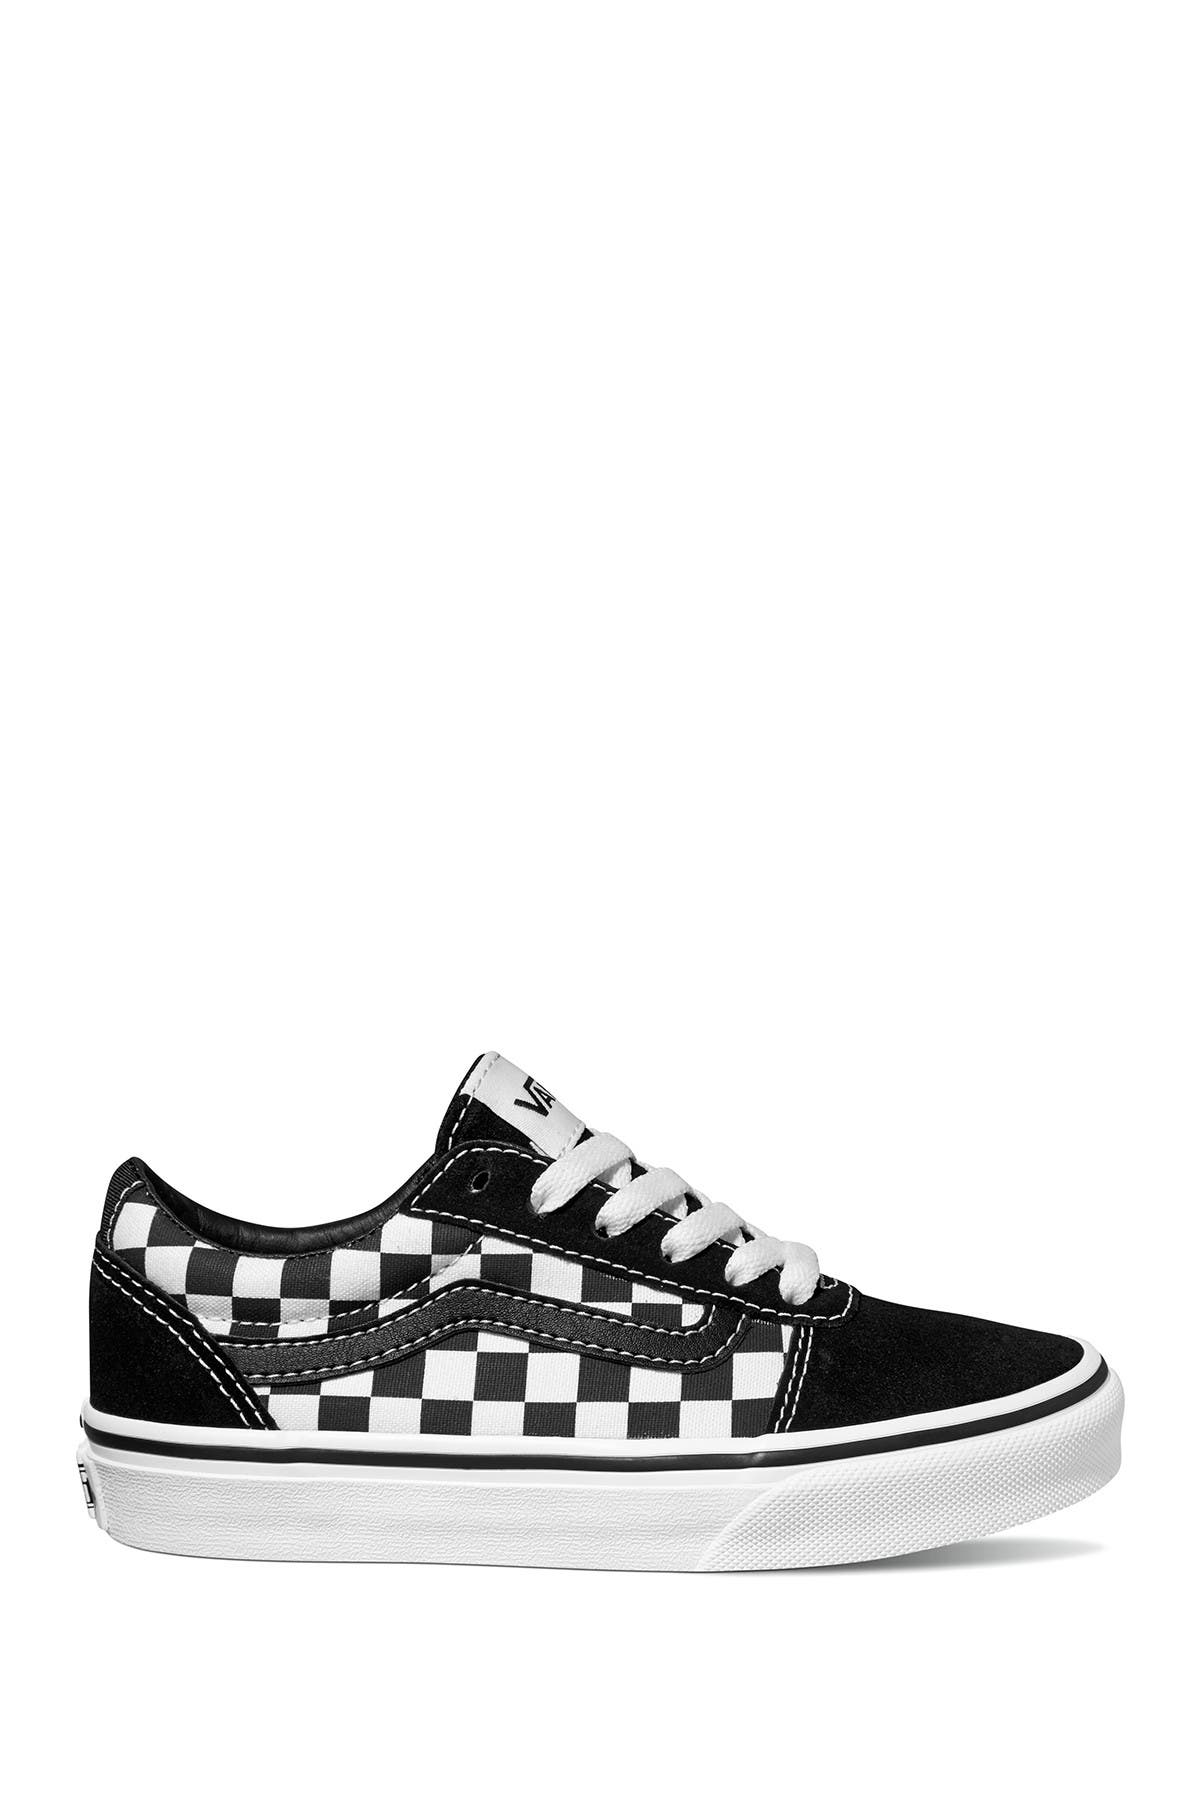 Image of VANS Ward Checkered Sneaker